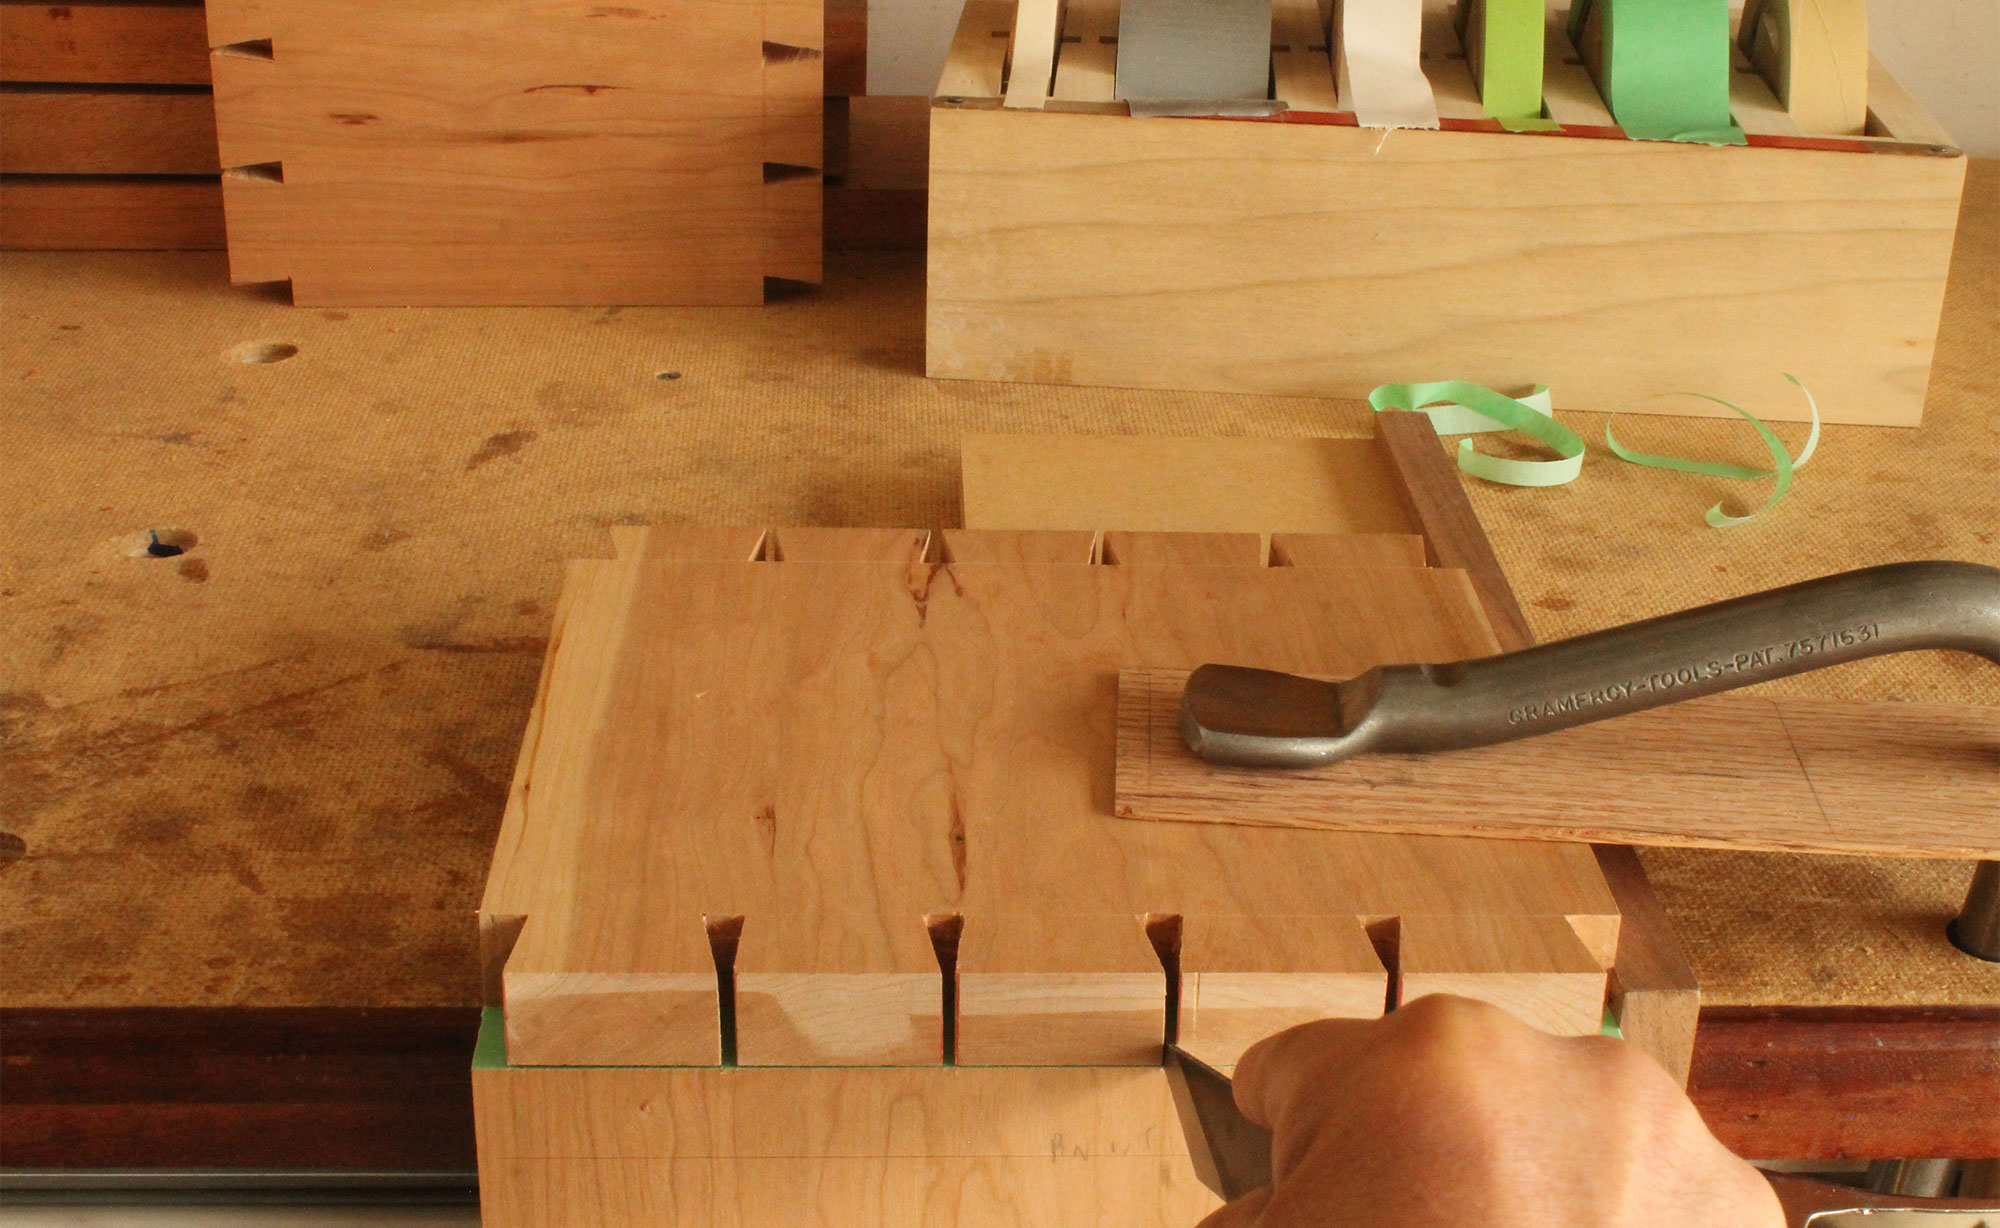 Using tape to help cut dovetails.